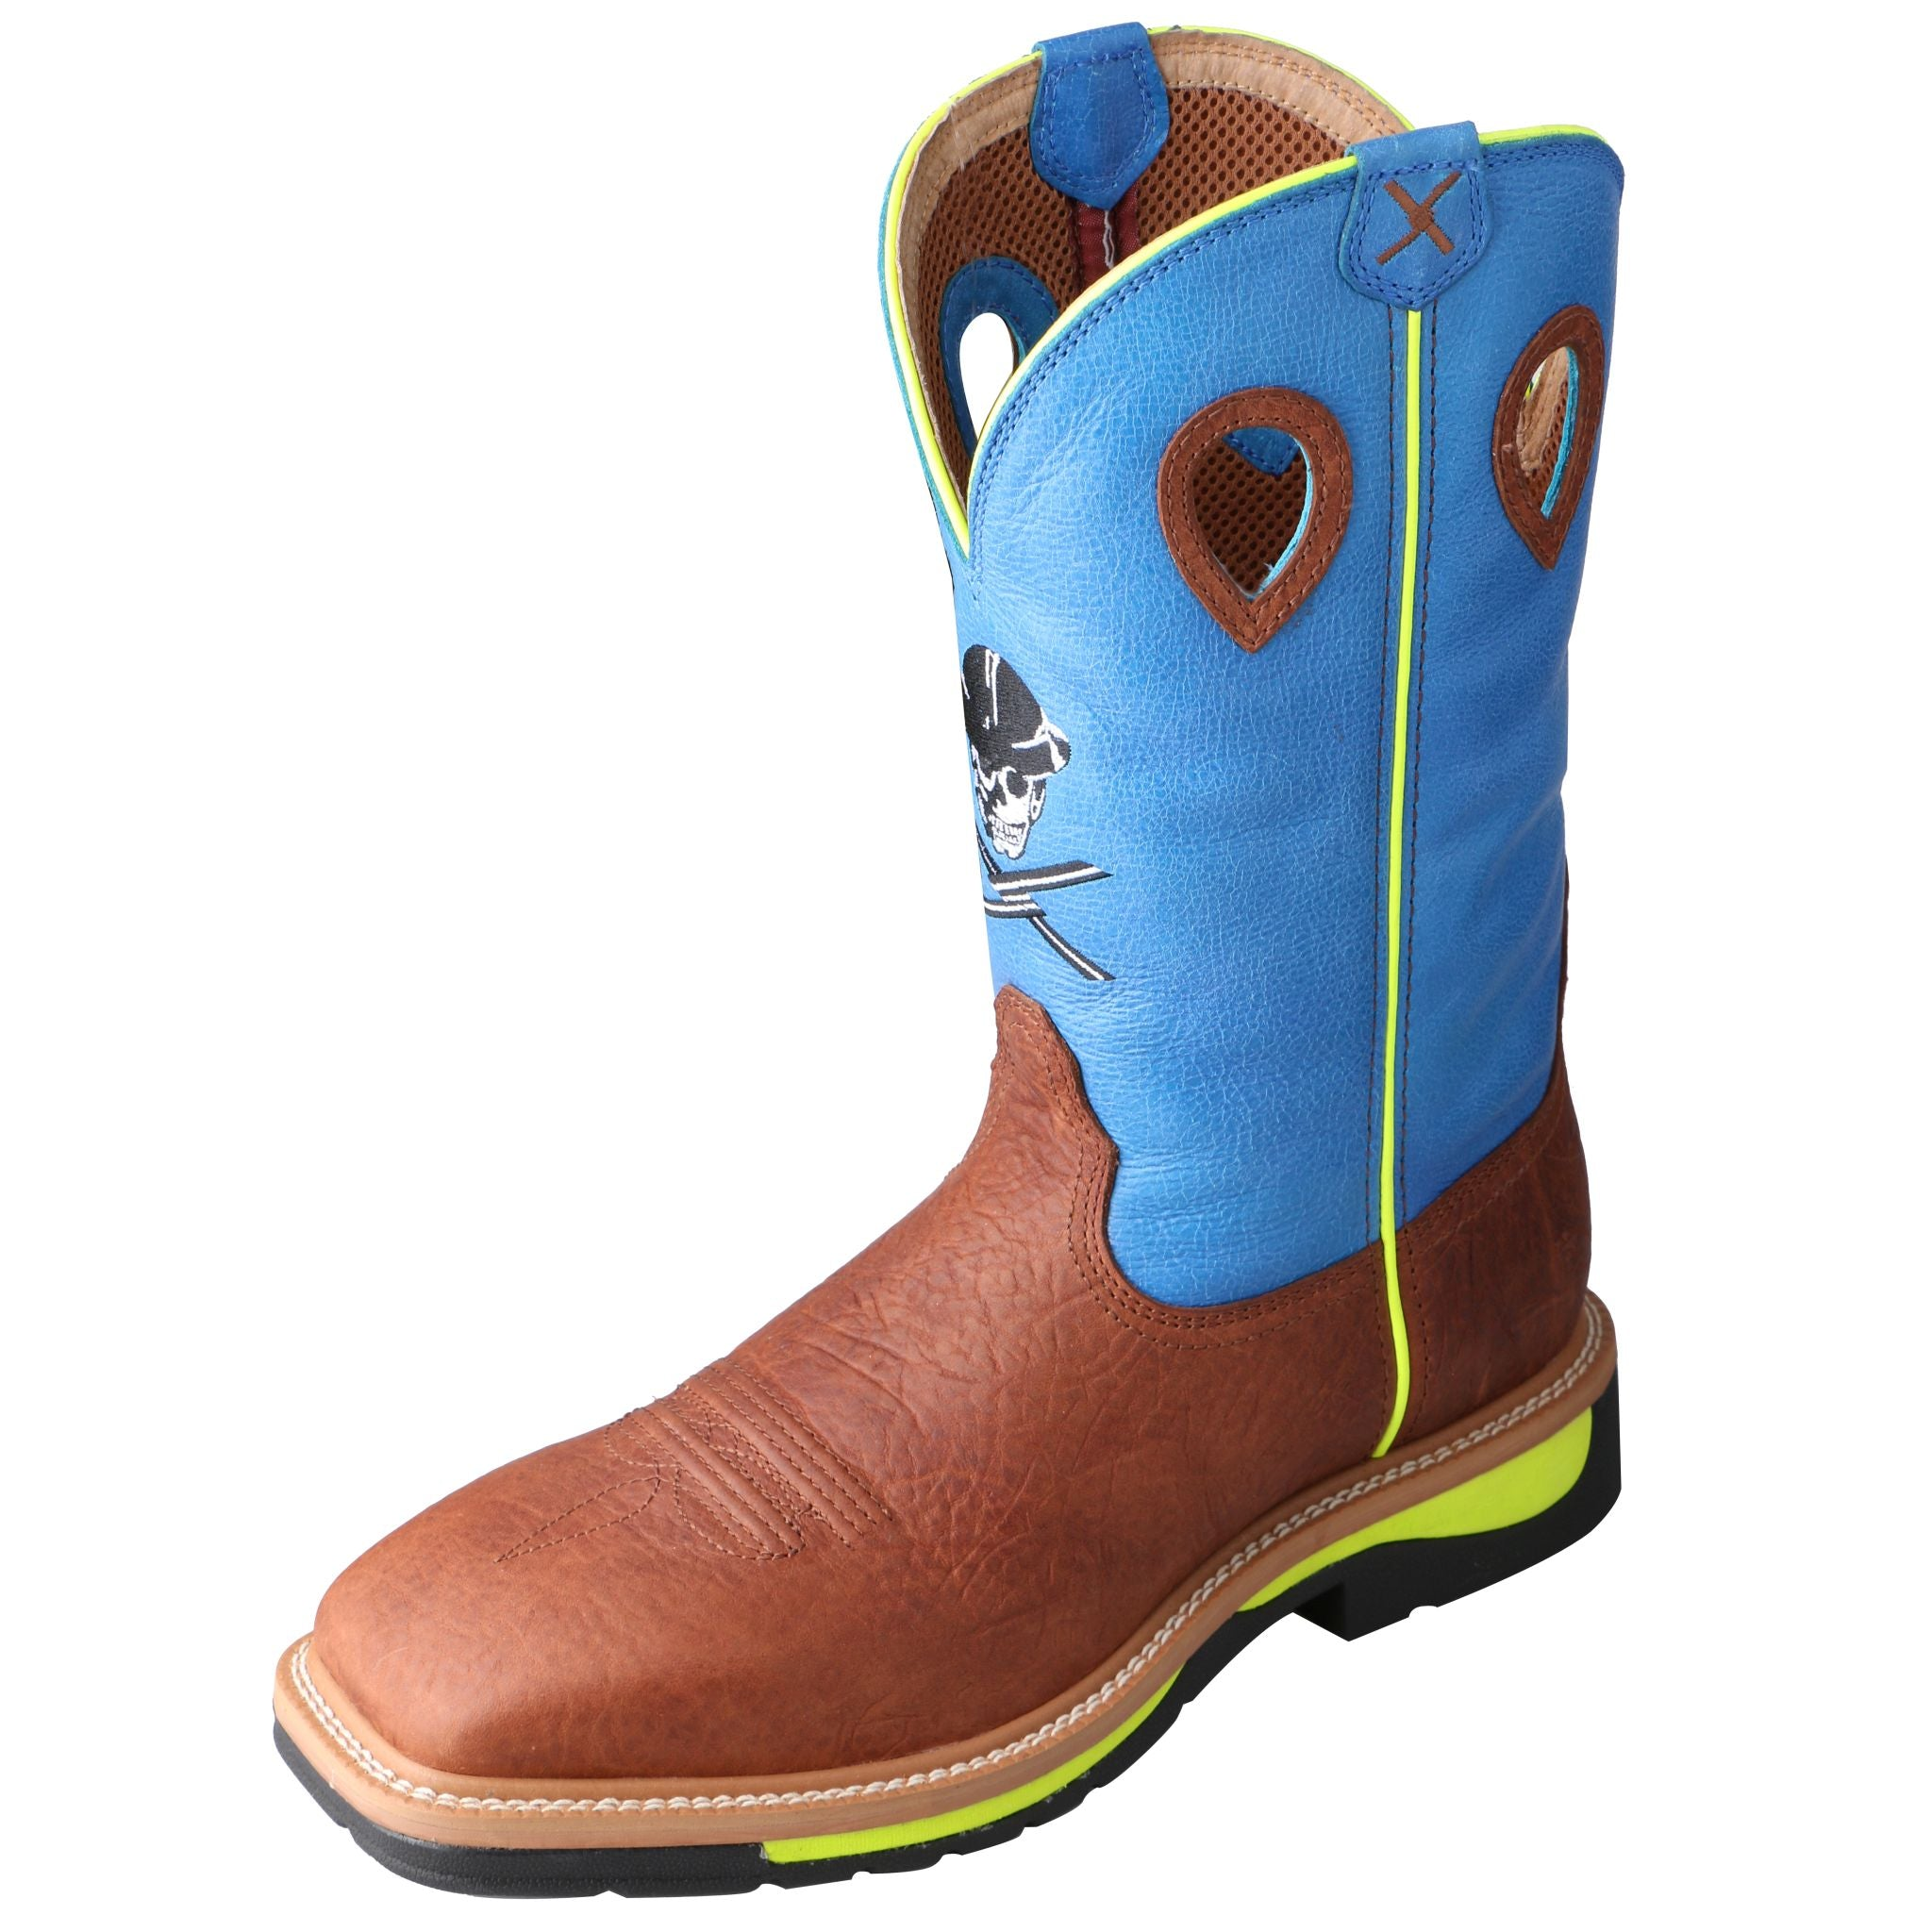 Lite Cowboy Skull Work Boot - Neon Blue / Neon Yellow / Brown Oiled Shoulder